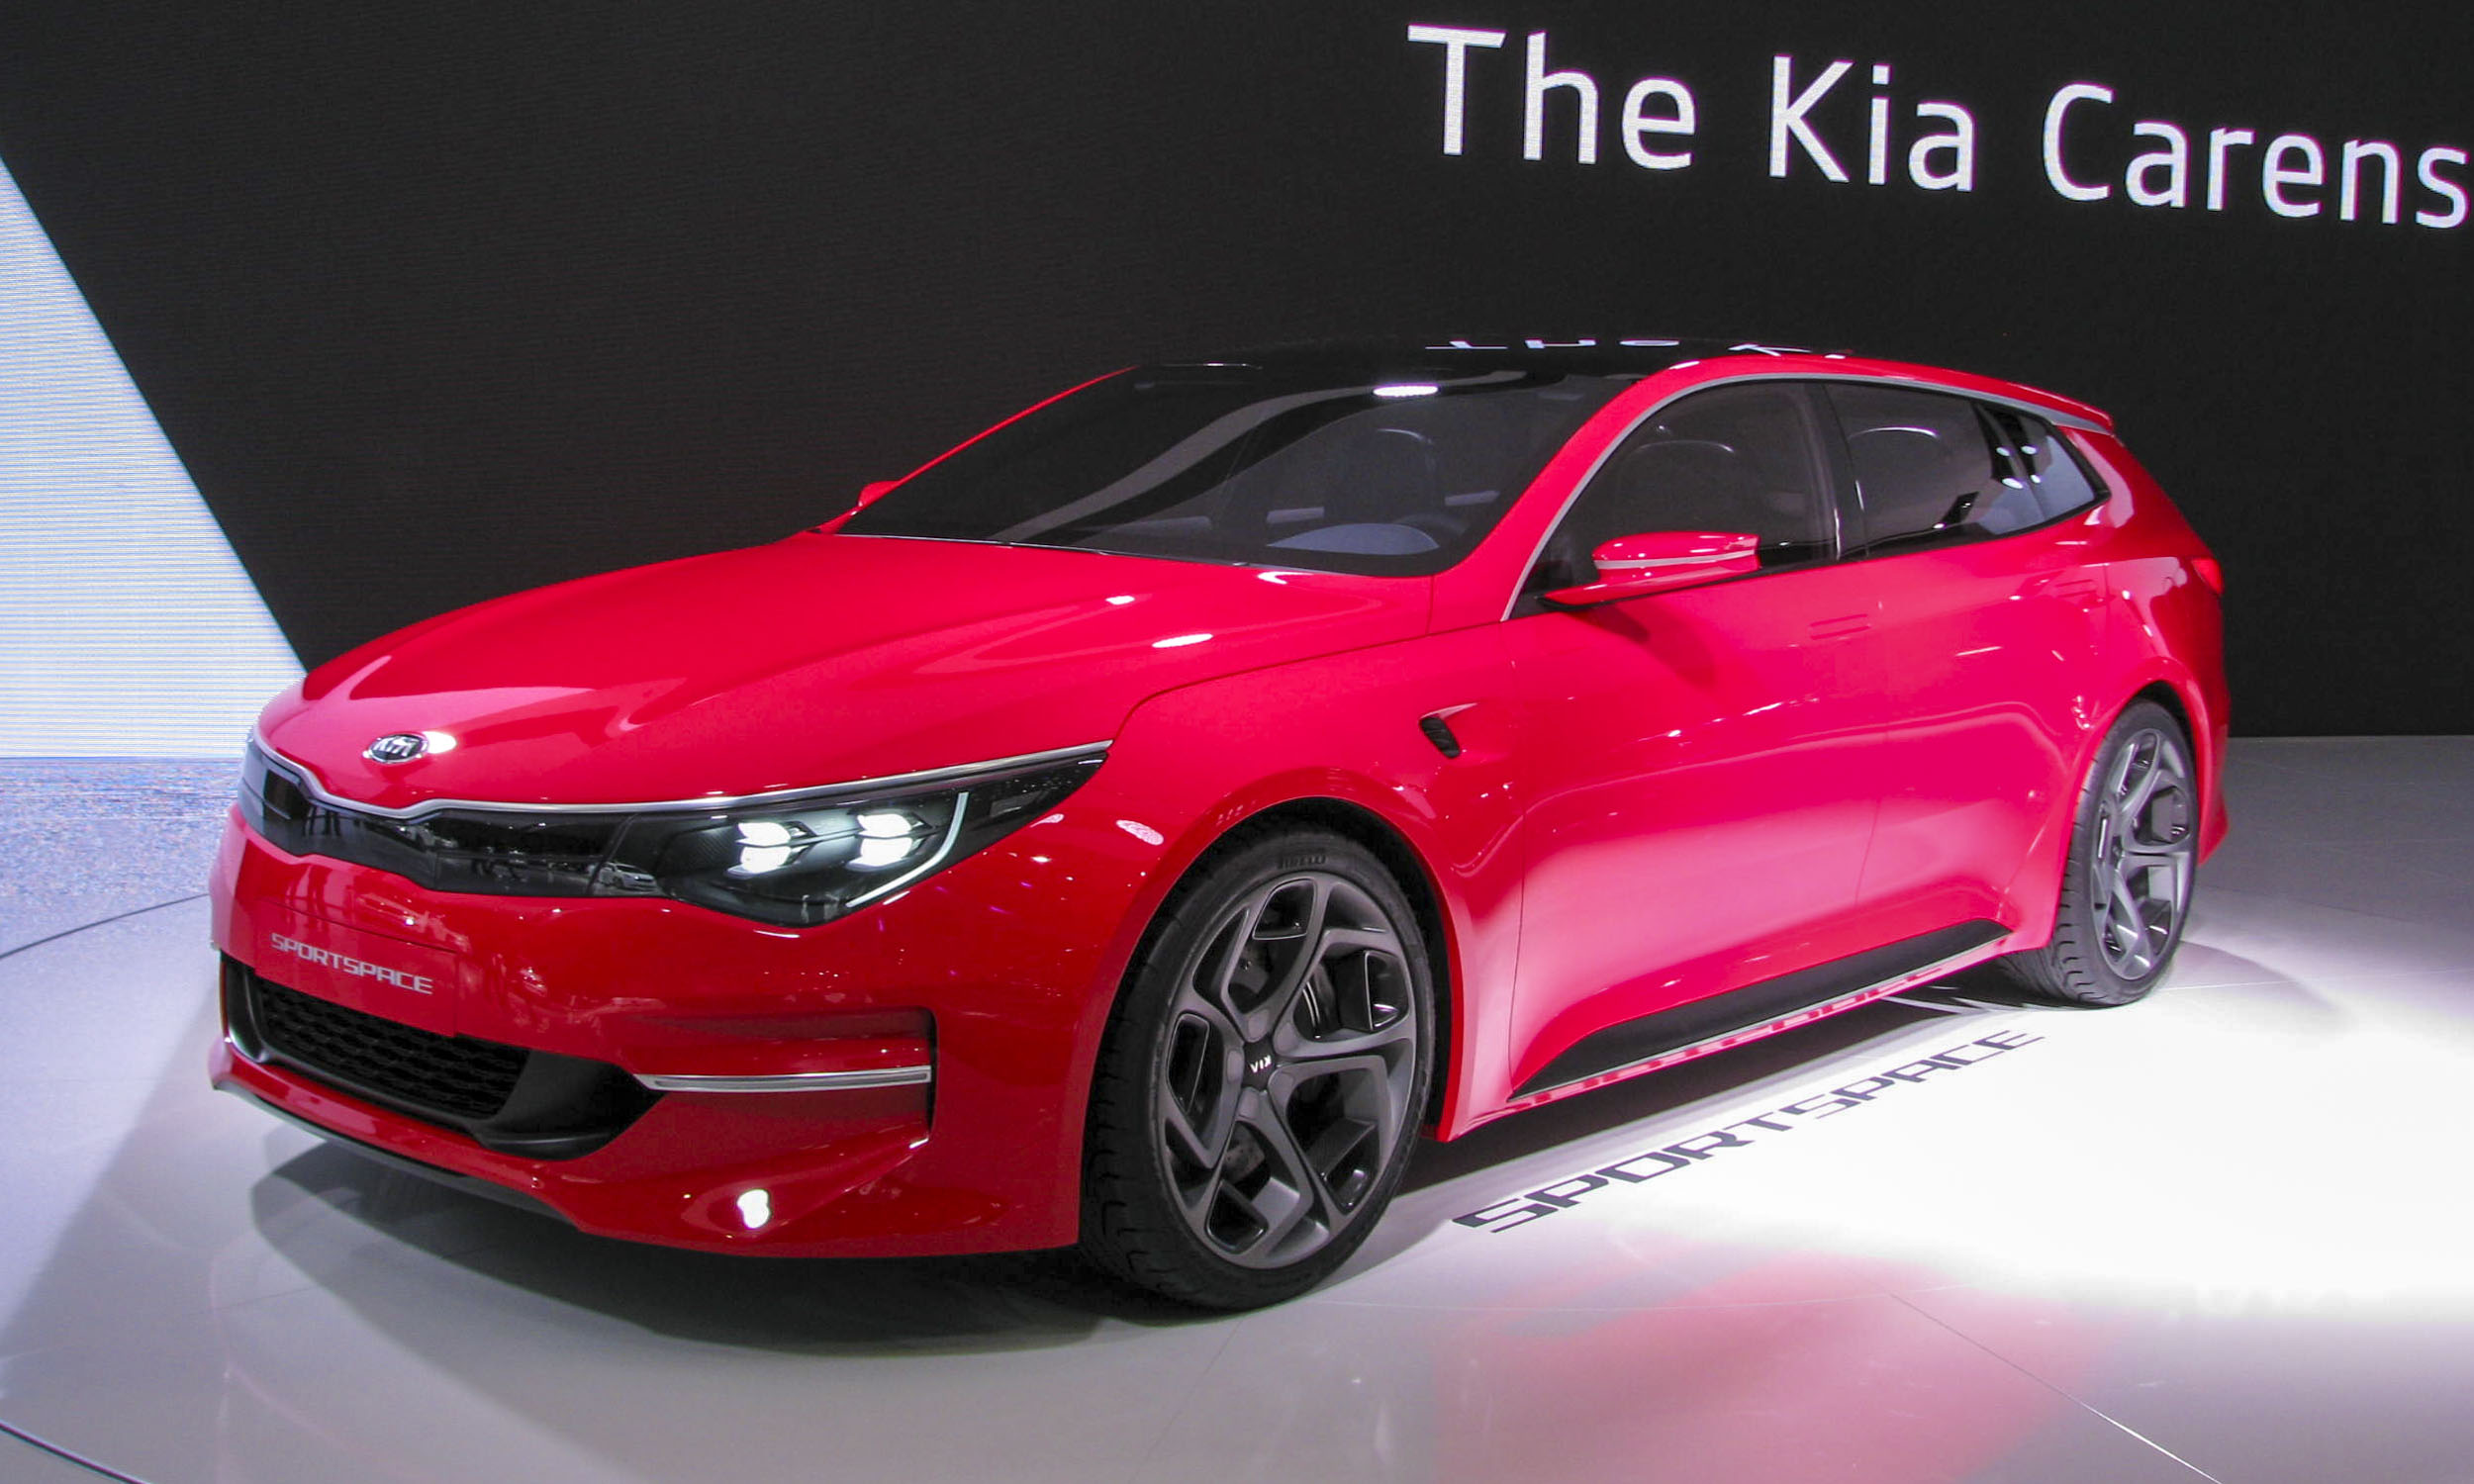 Year In Review Best Concept Cars Of 2015 Autonxt Wiring Diagram Kia Carens Mike Meredith Automotive Content Experience